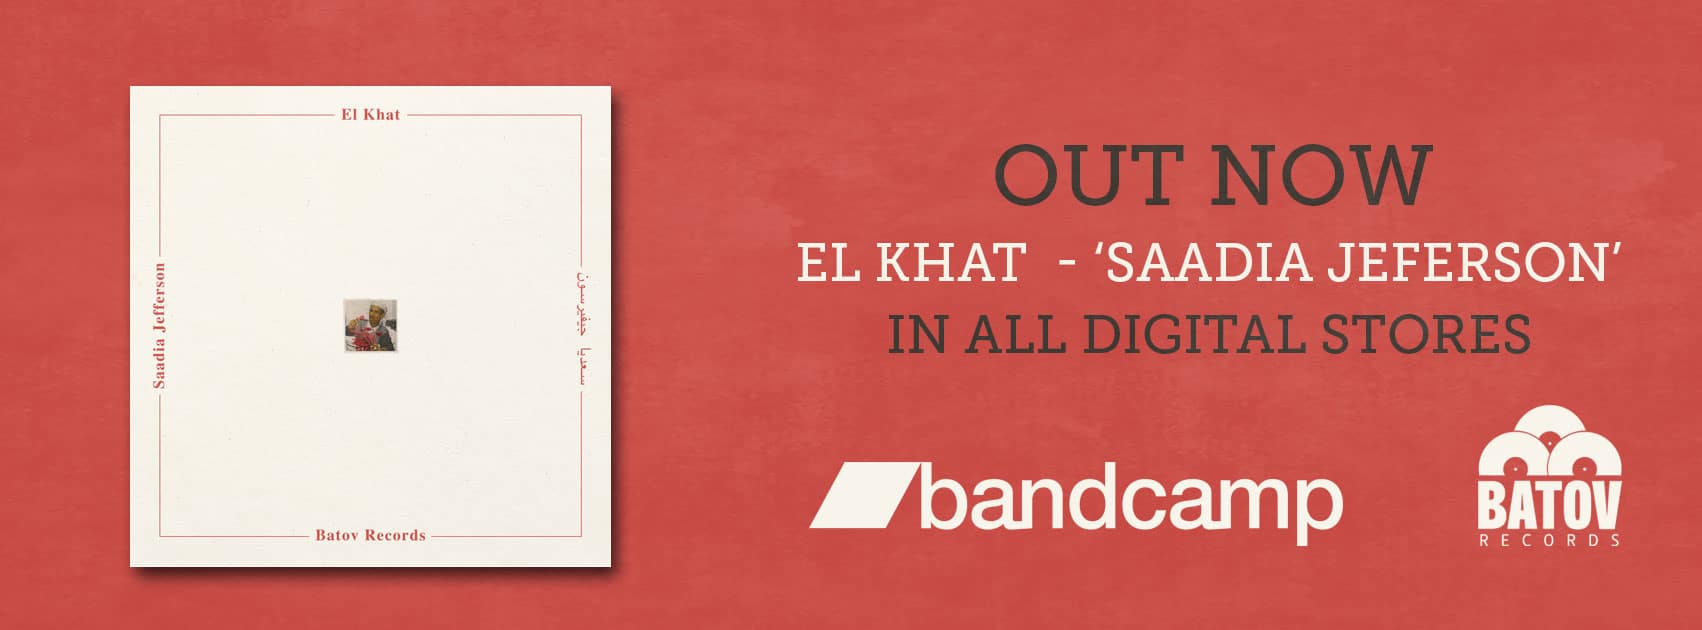 El-Khat---Saadia-Jefferson--digital-out-now